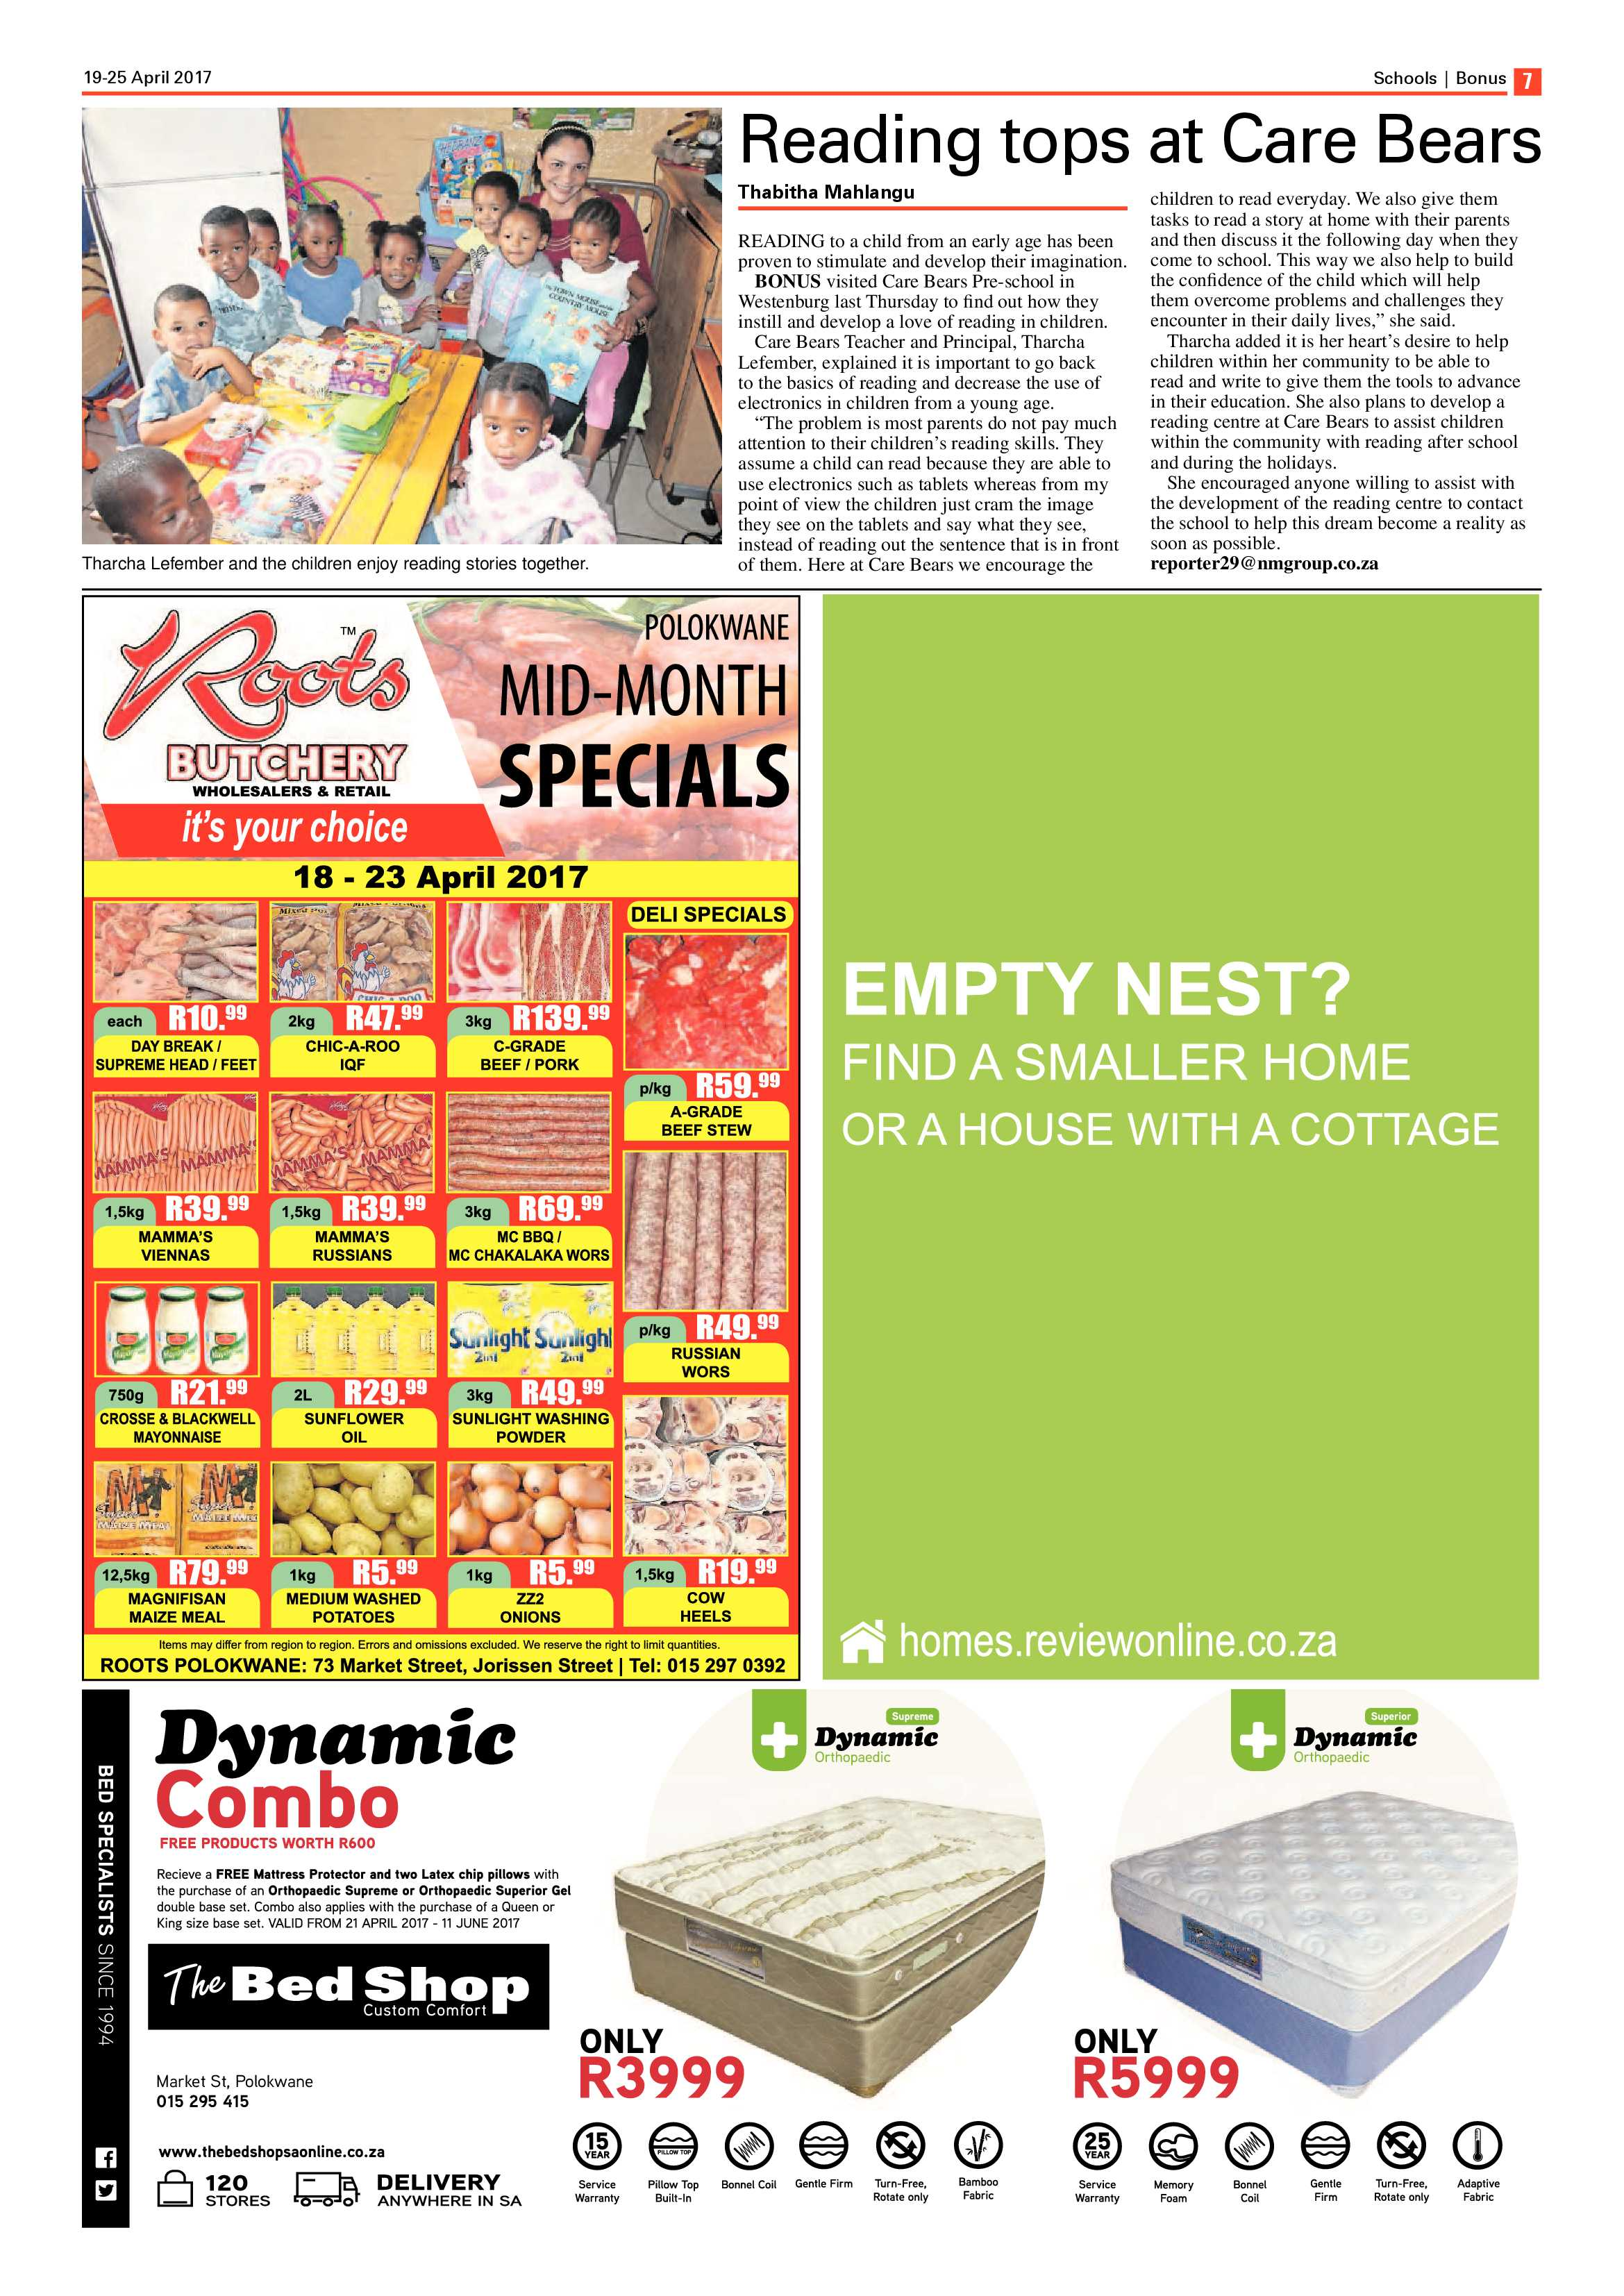 bonus-review-19-april-2017-epapers-page-7